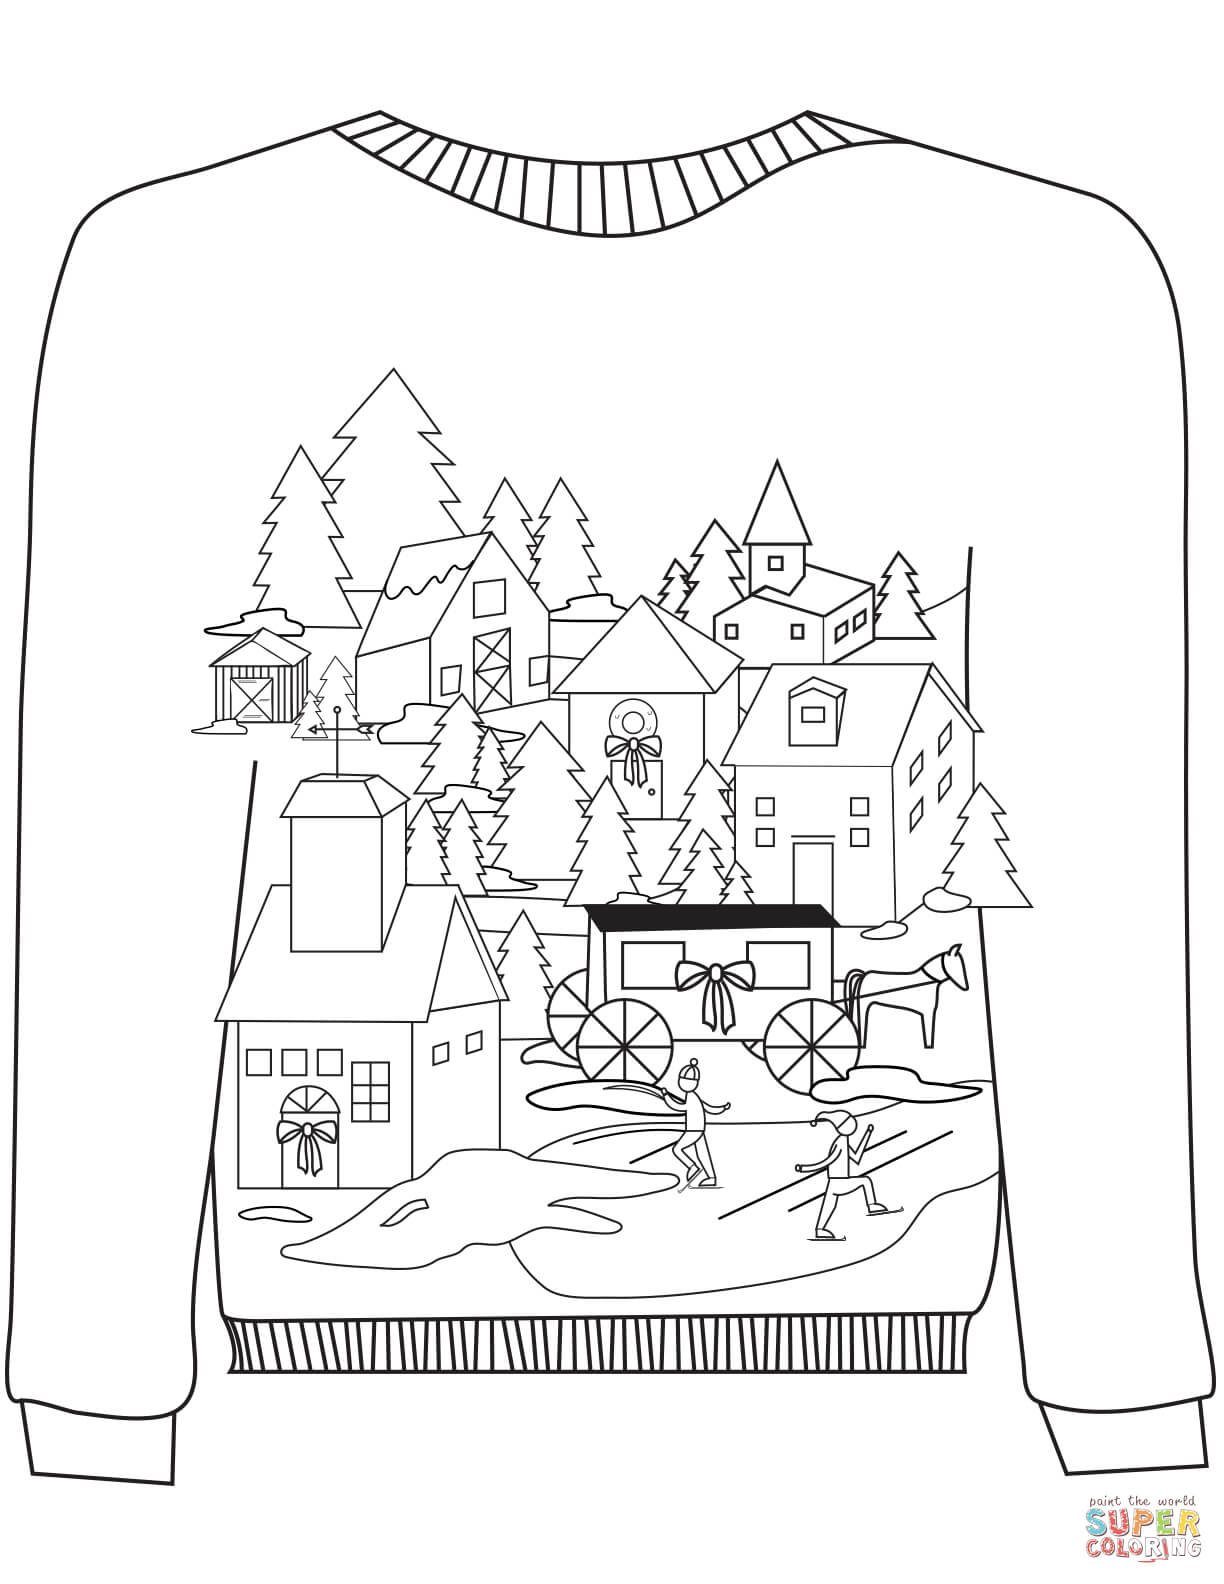 Christmas Village Coloring With Ugly Sweater A Motif Page Free